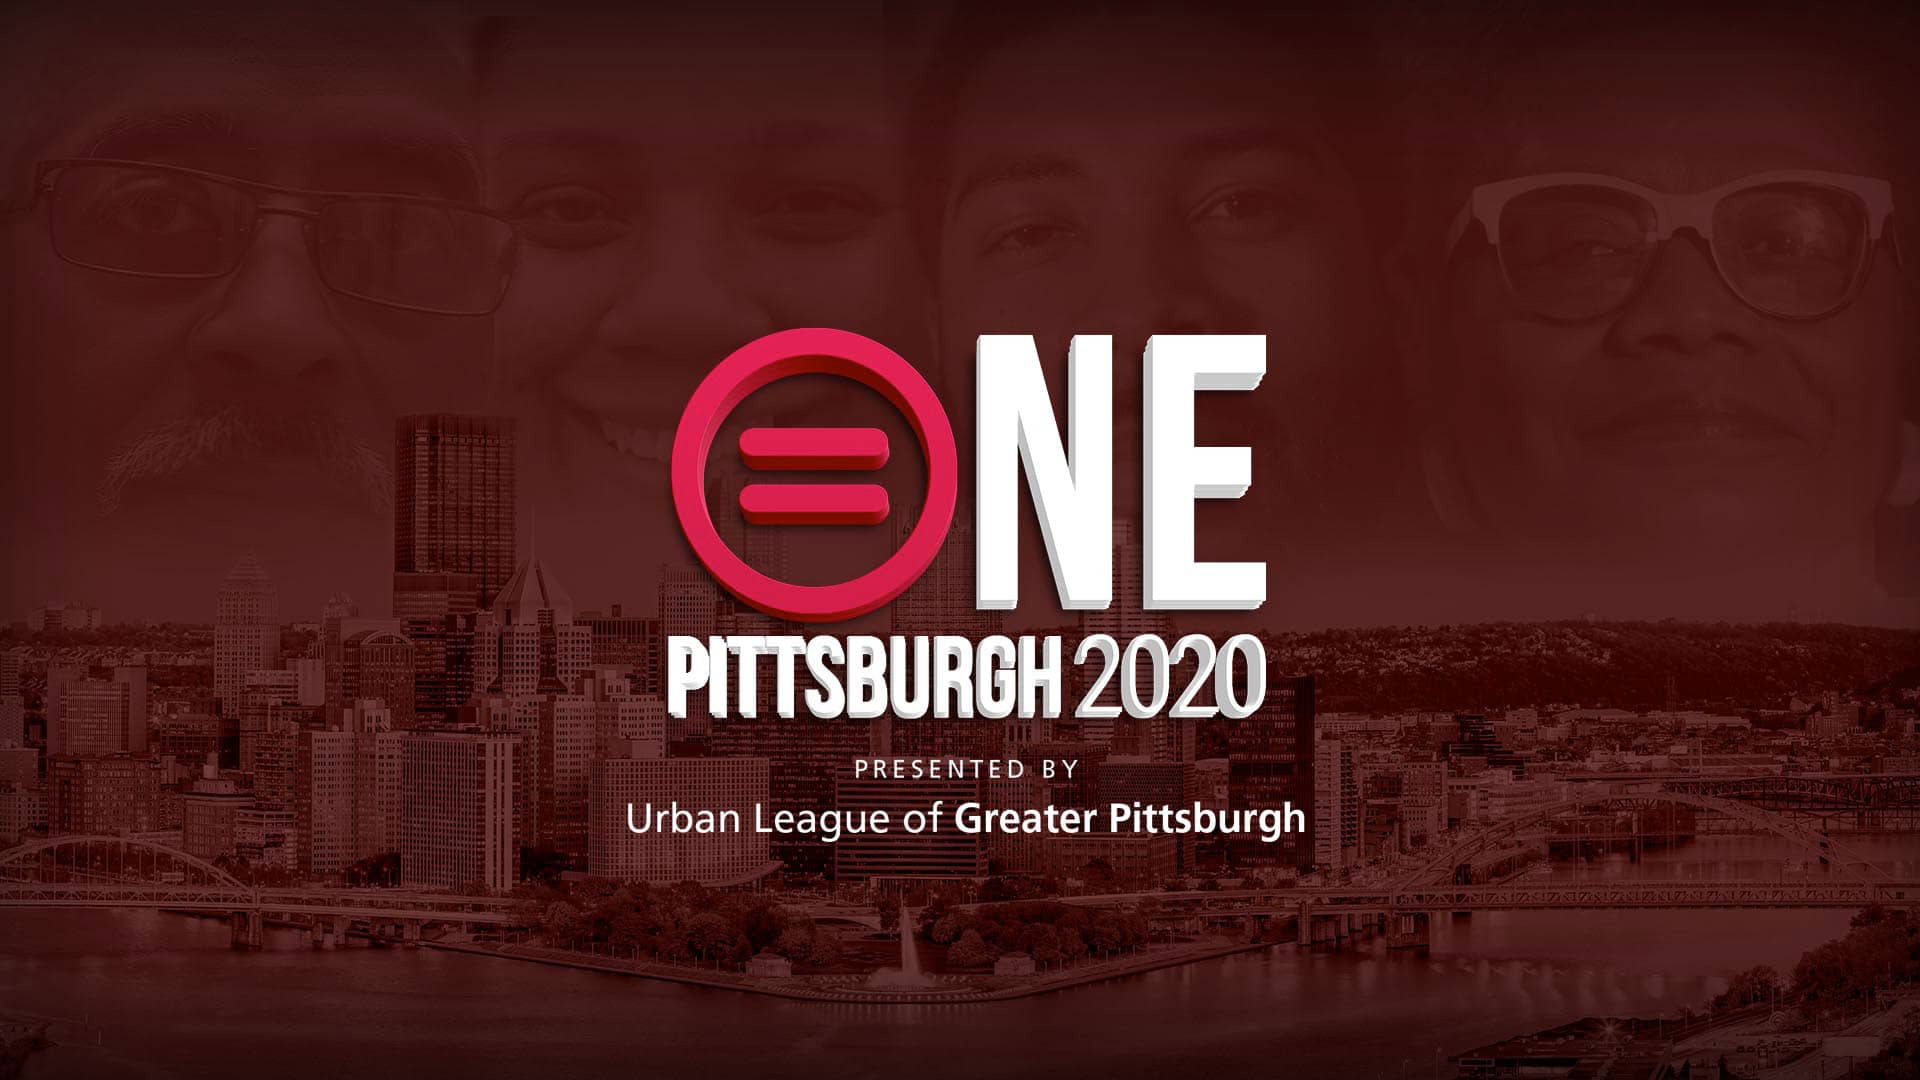 One Pittsburgh 2020 presented by the Urban League of Greater Pittsburgh